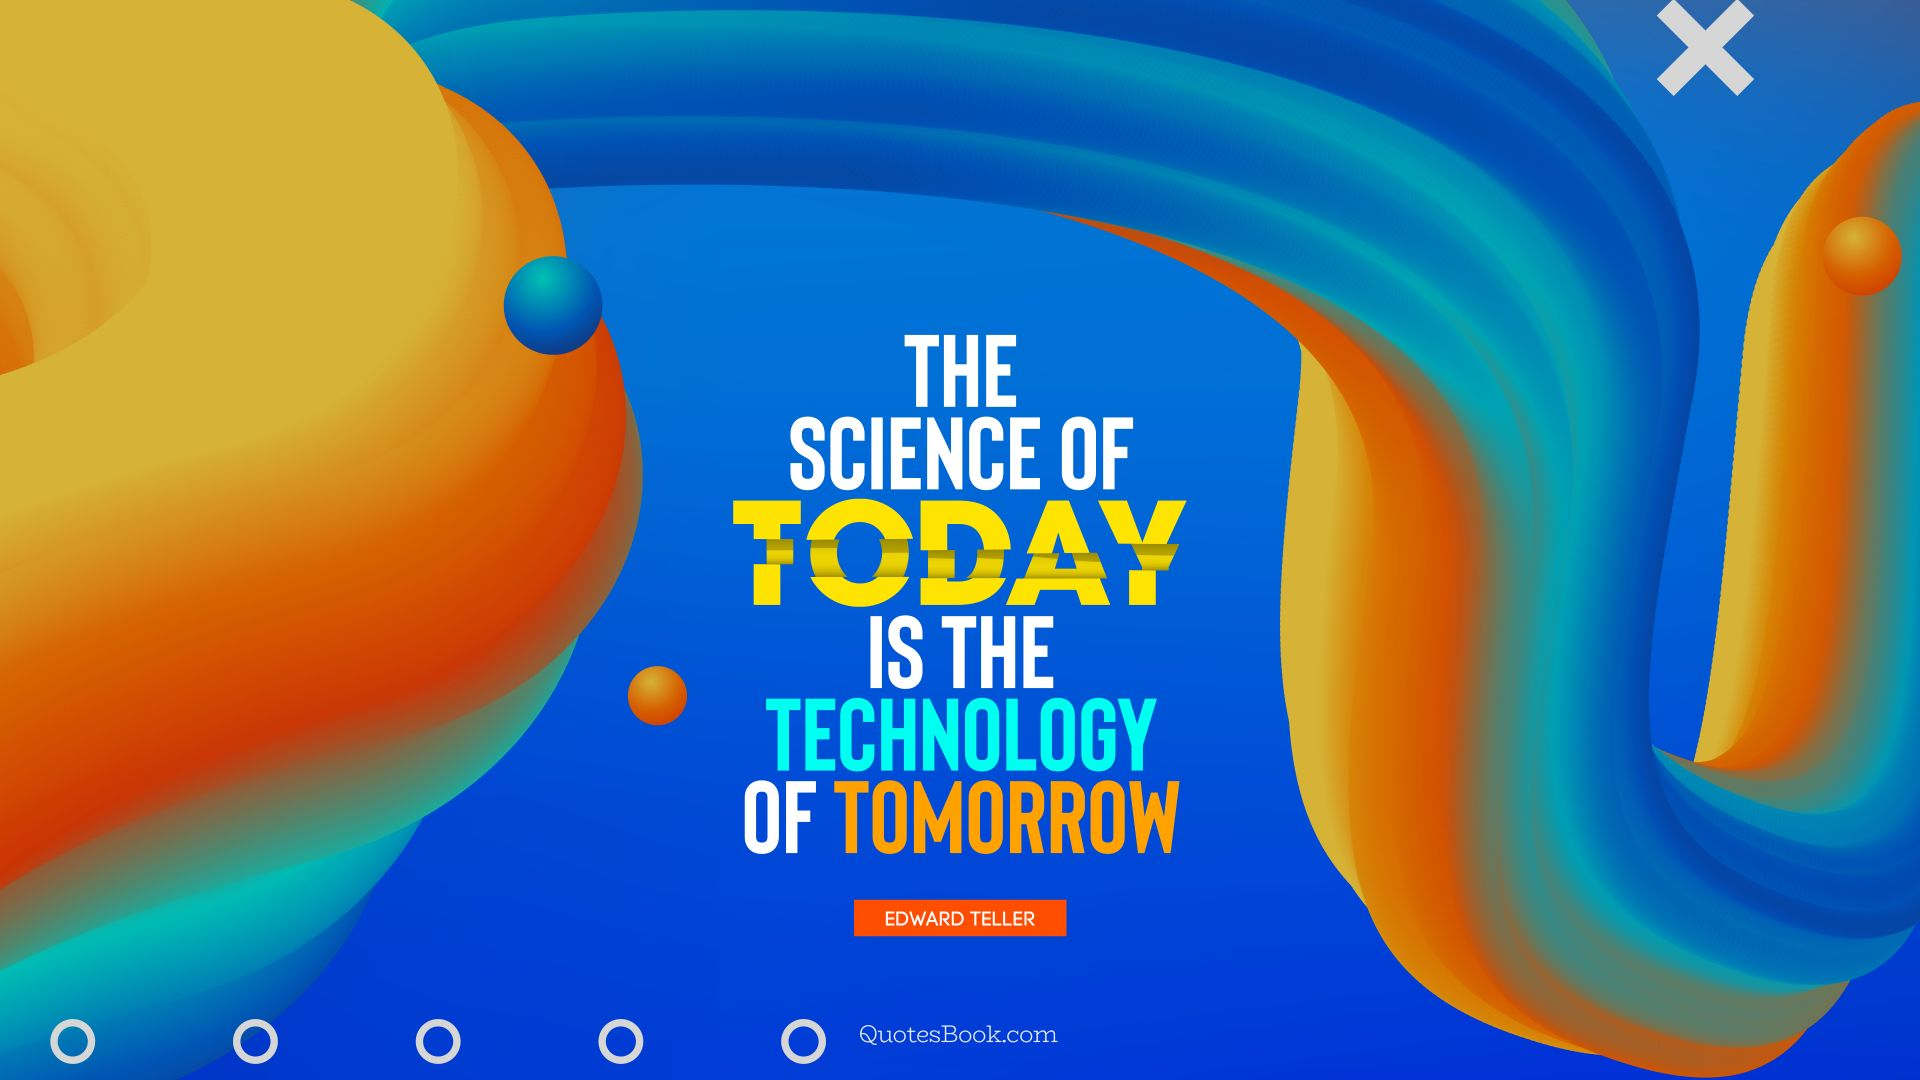 The science of today is the technology of tomorrow. - Quote by Edward Teller